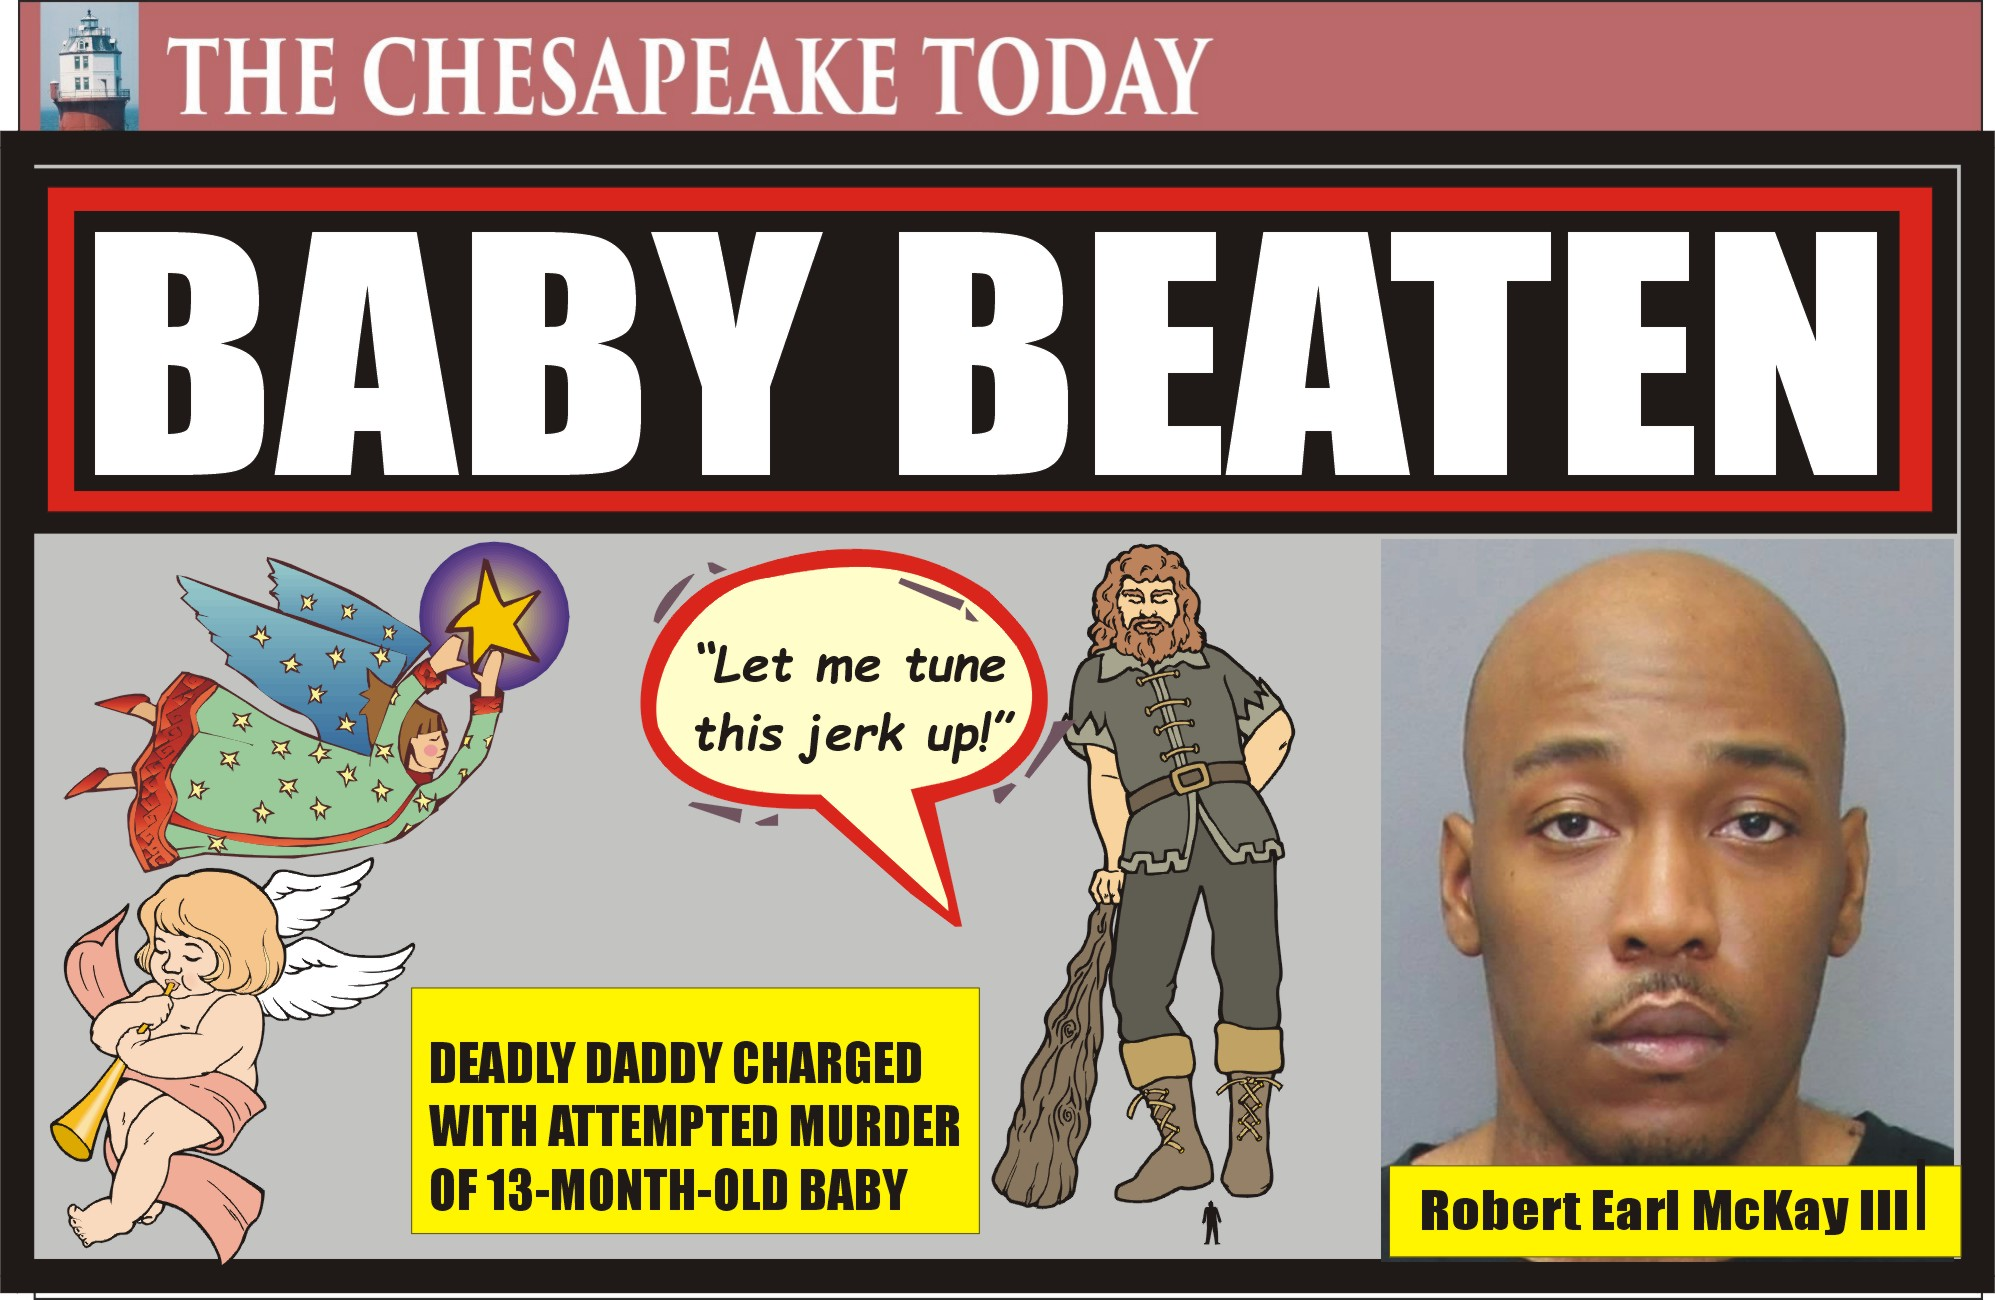 MURDER USA: Robert Earl McKay III Charged with Attempted Murder of Infant